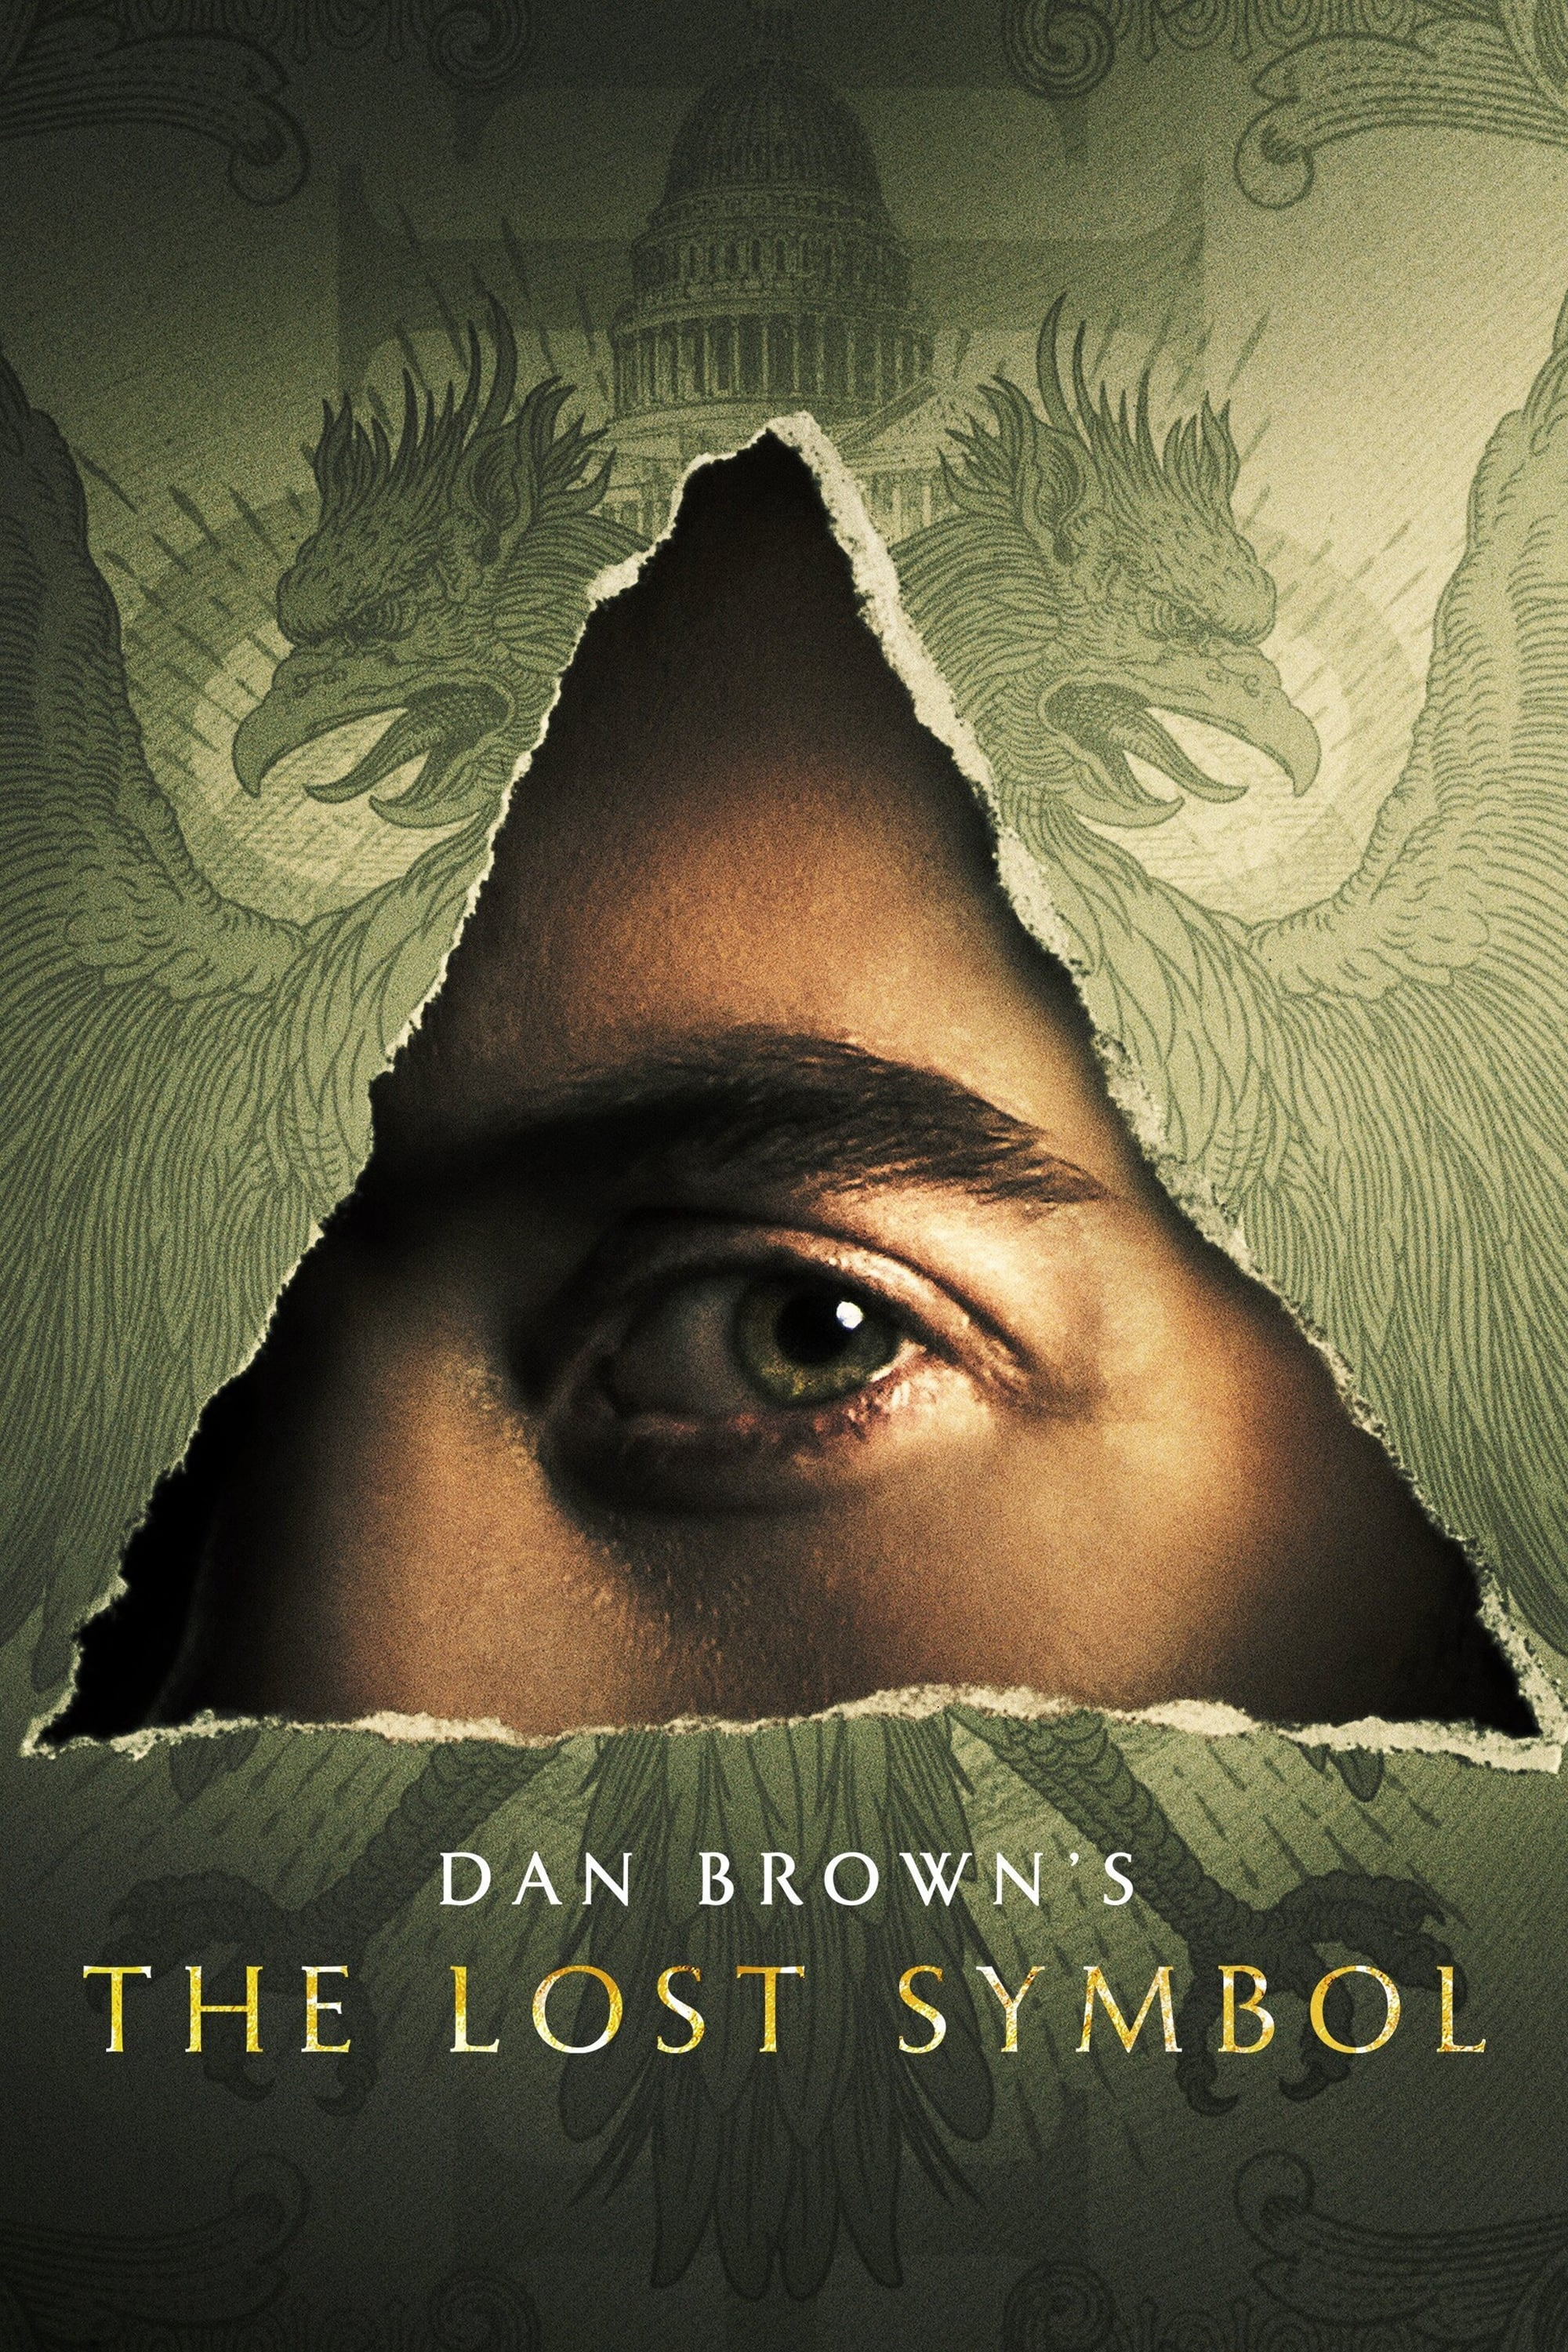 Dan Brown's The Lost Symbol TV Shows About Thriller